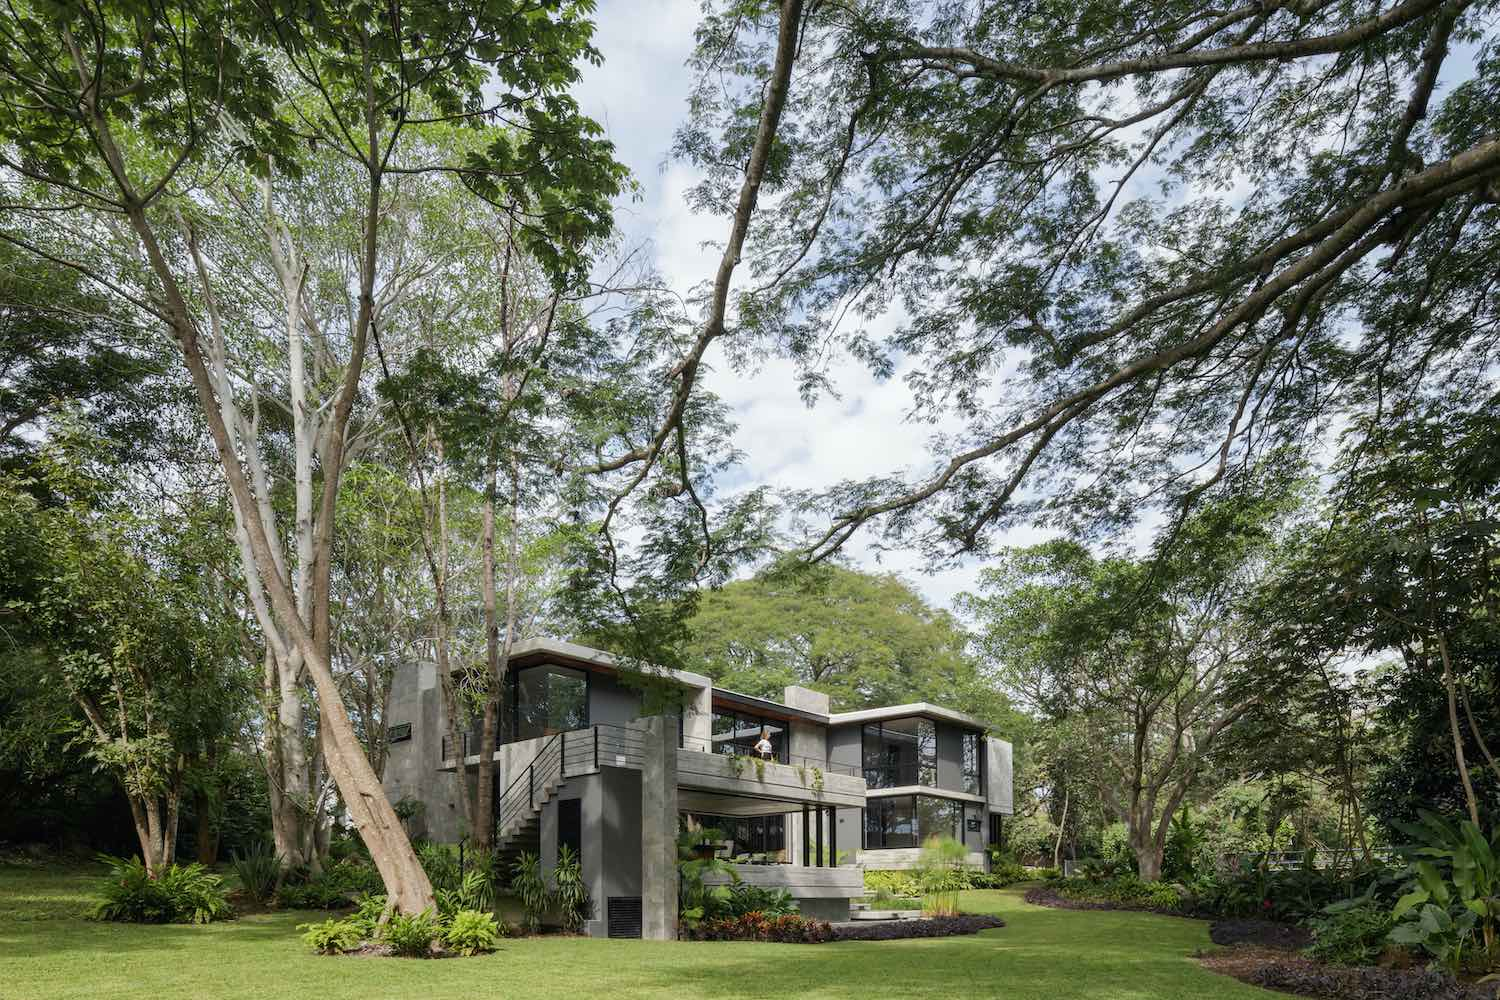 a concrete house located among trees in a jungle in Mexico